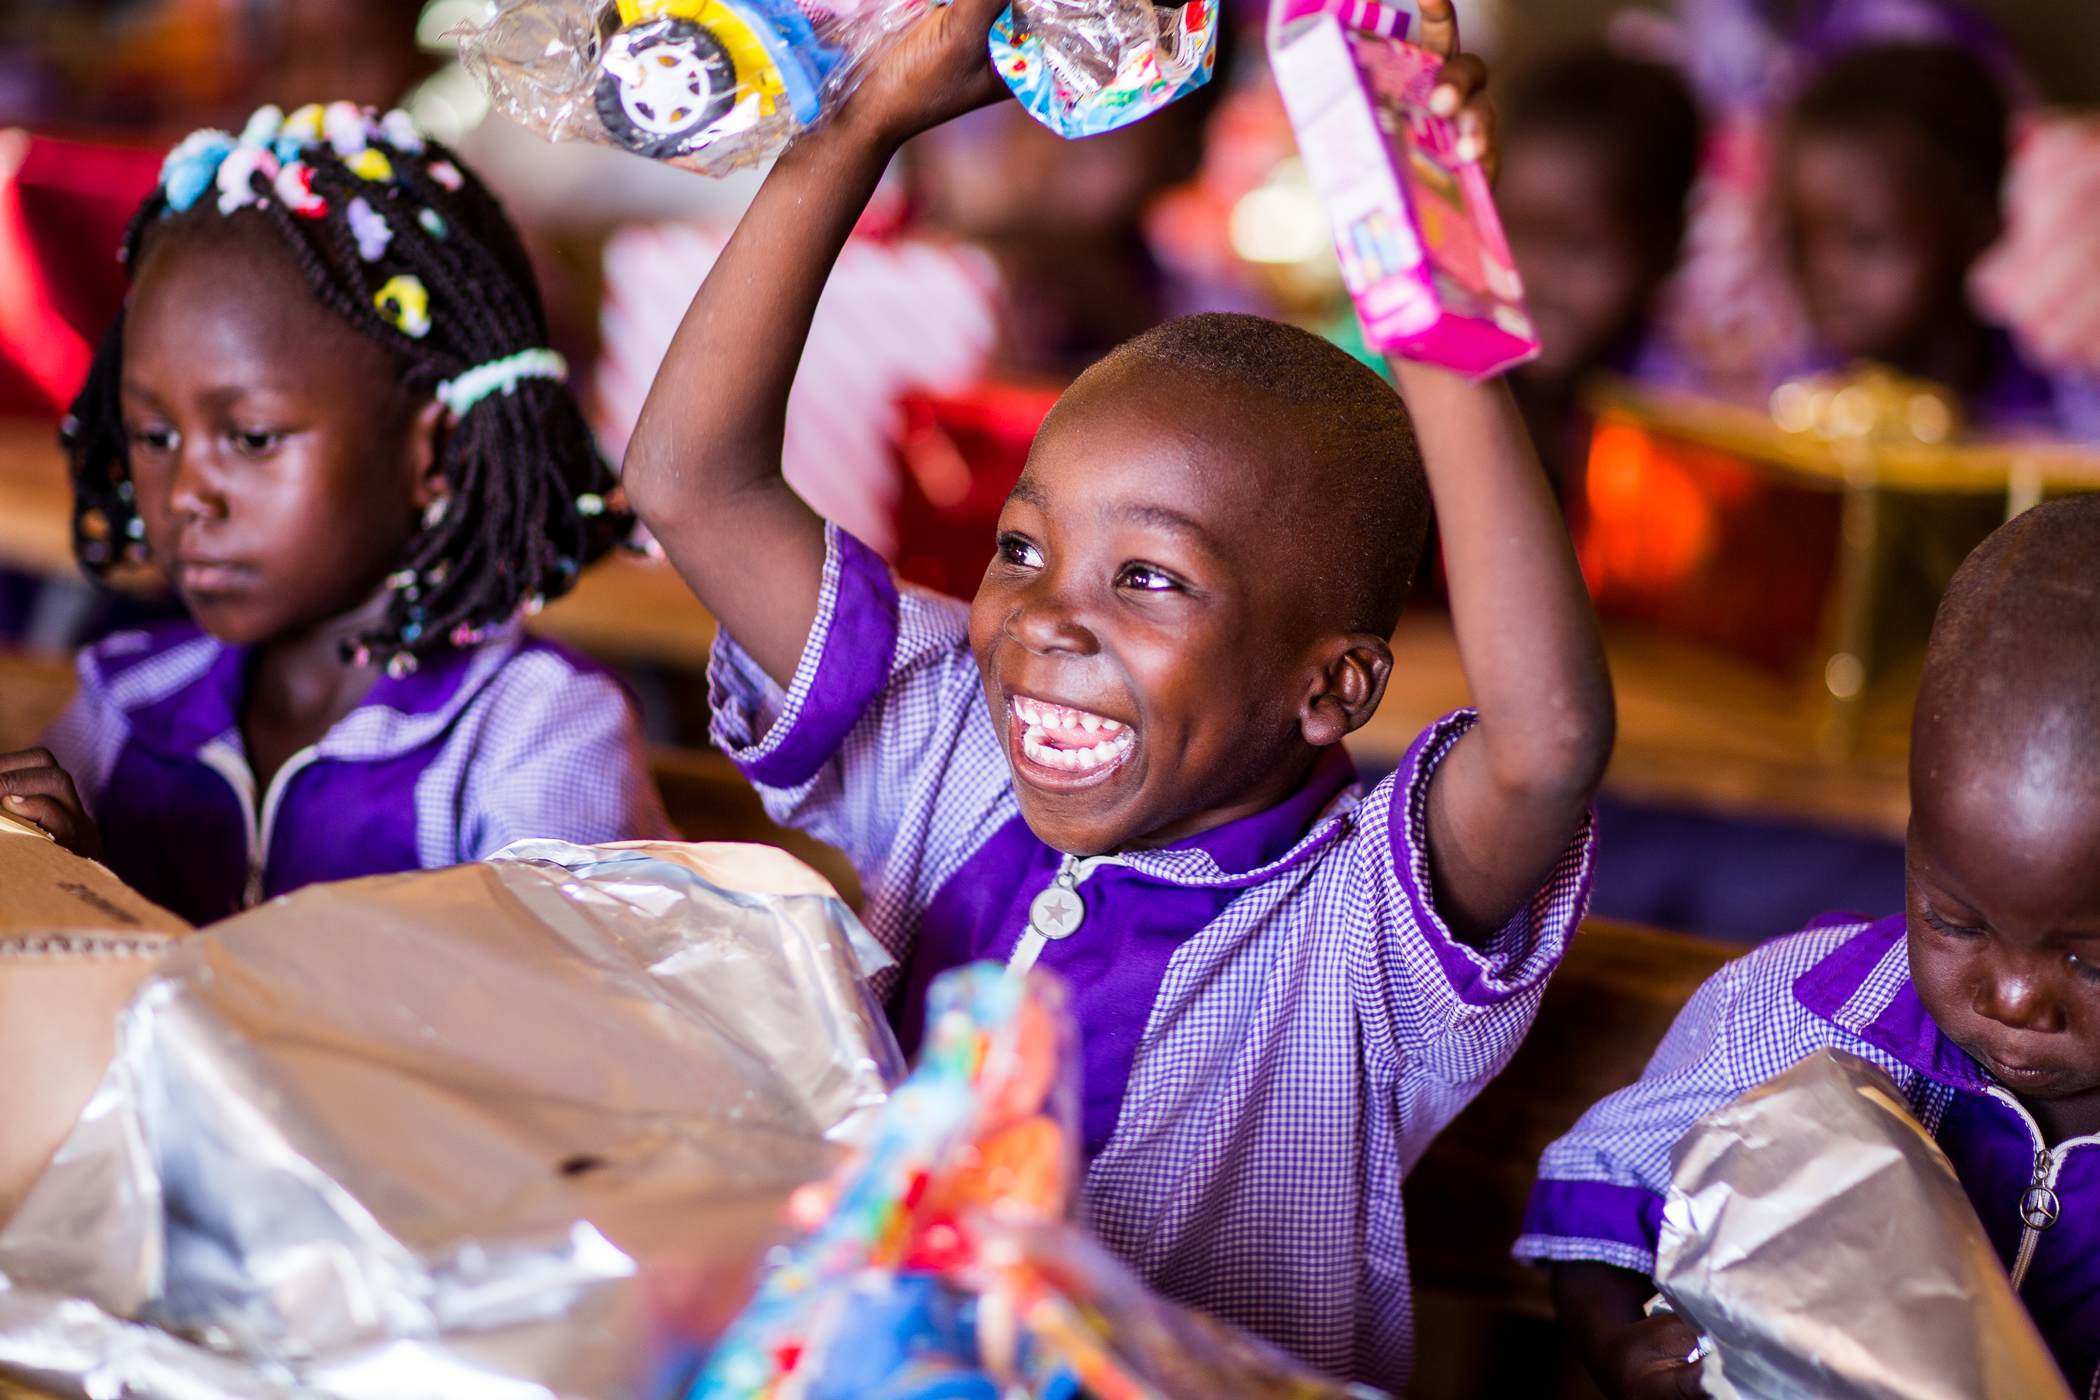 I little boy in Burkina Faso sits in class, opening his christmas presents. He looks very excited, smiling as he holds his new toys above his head.